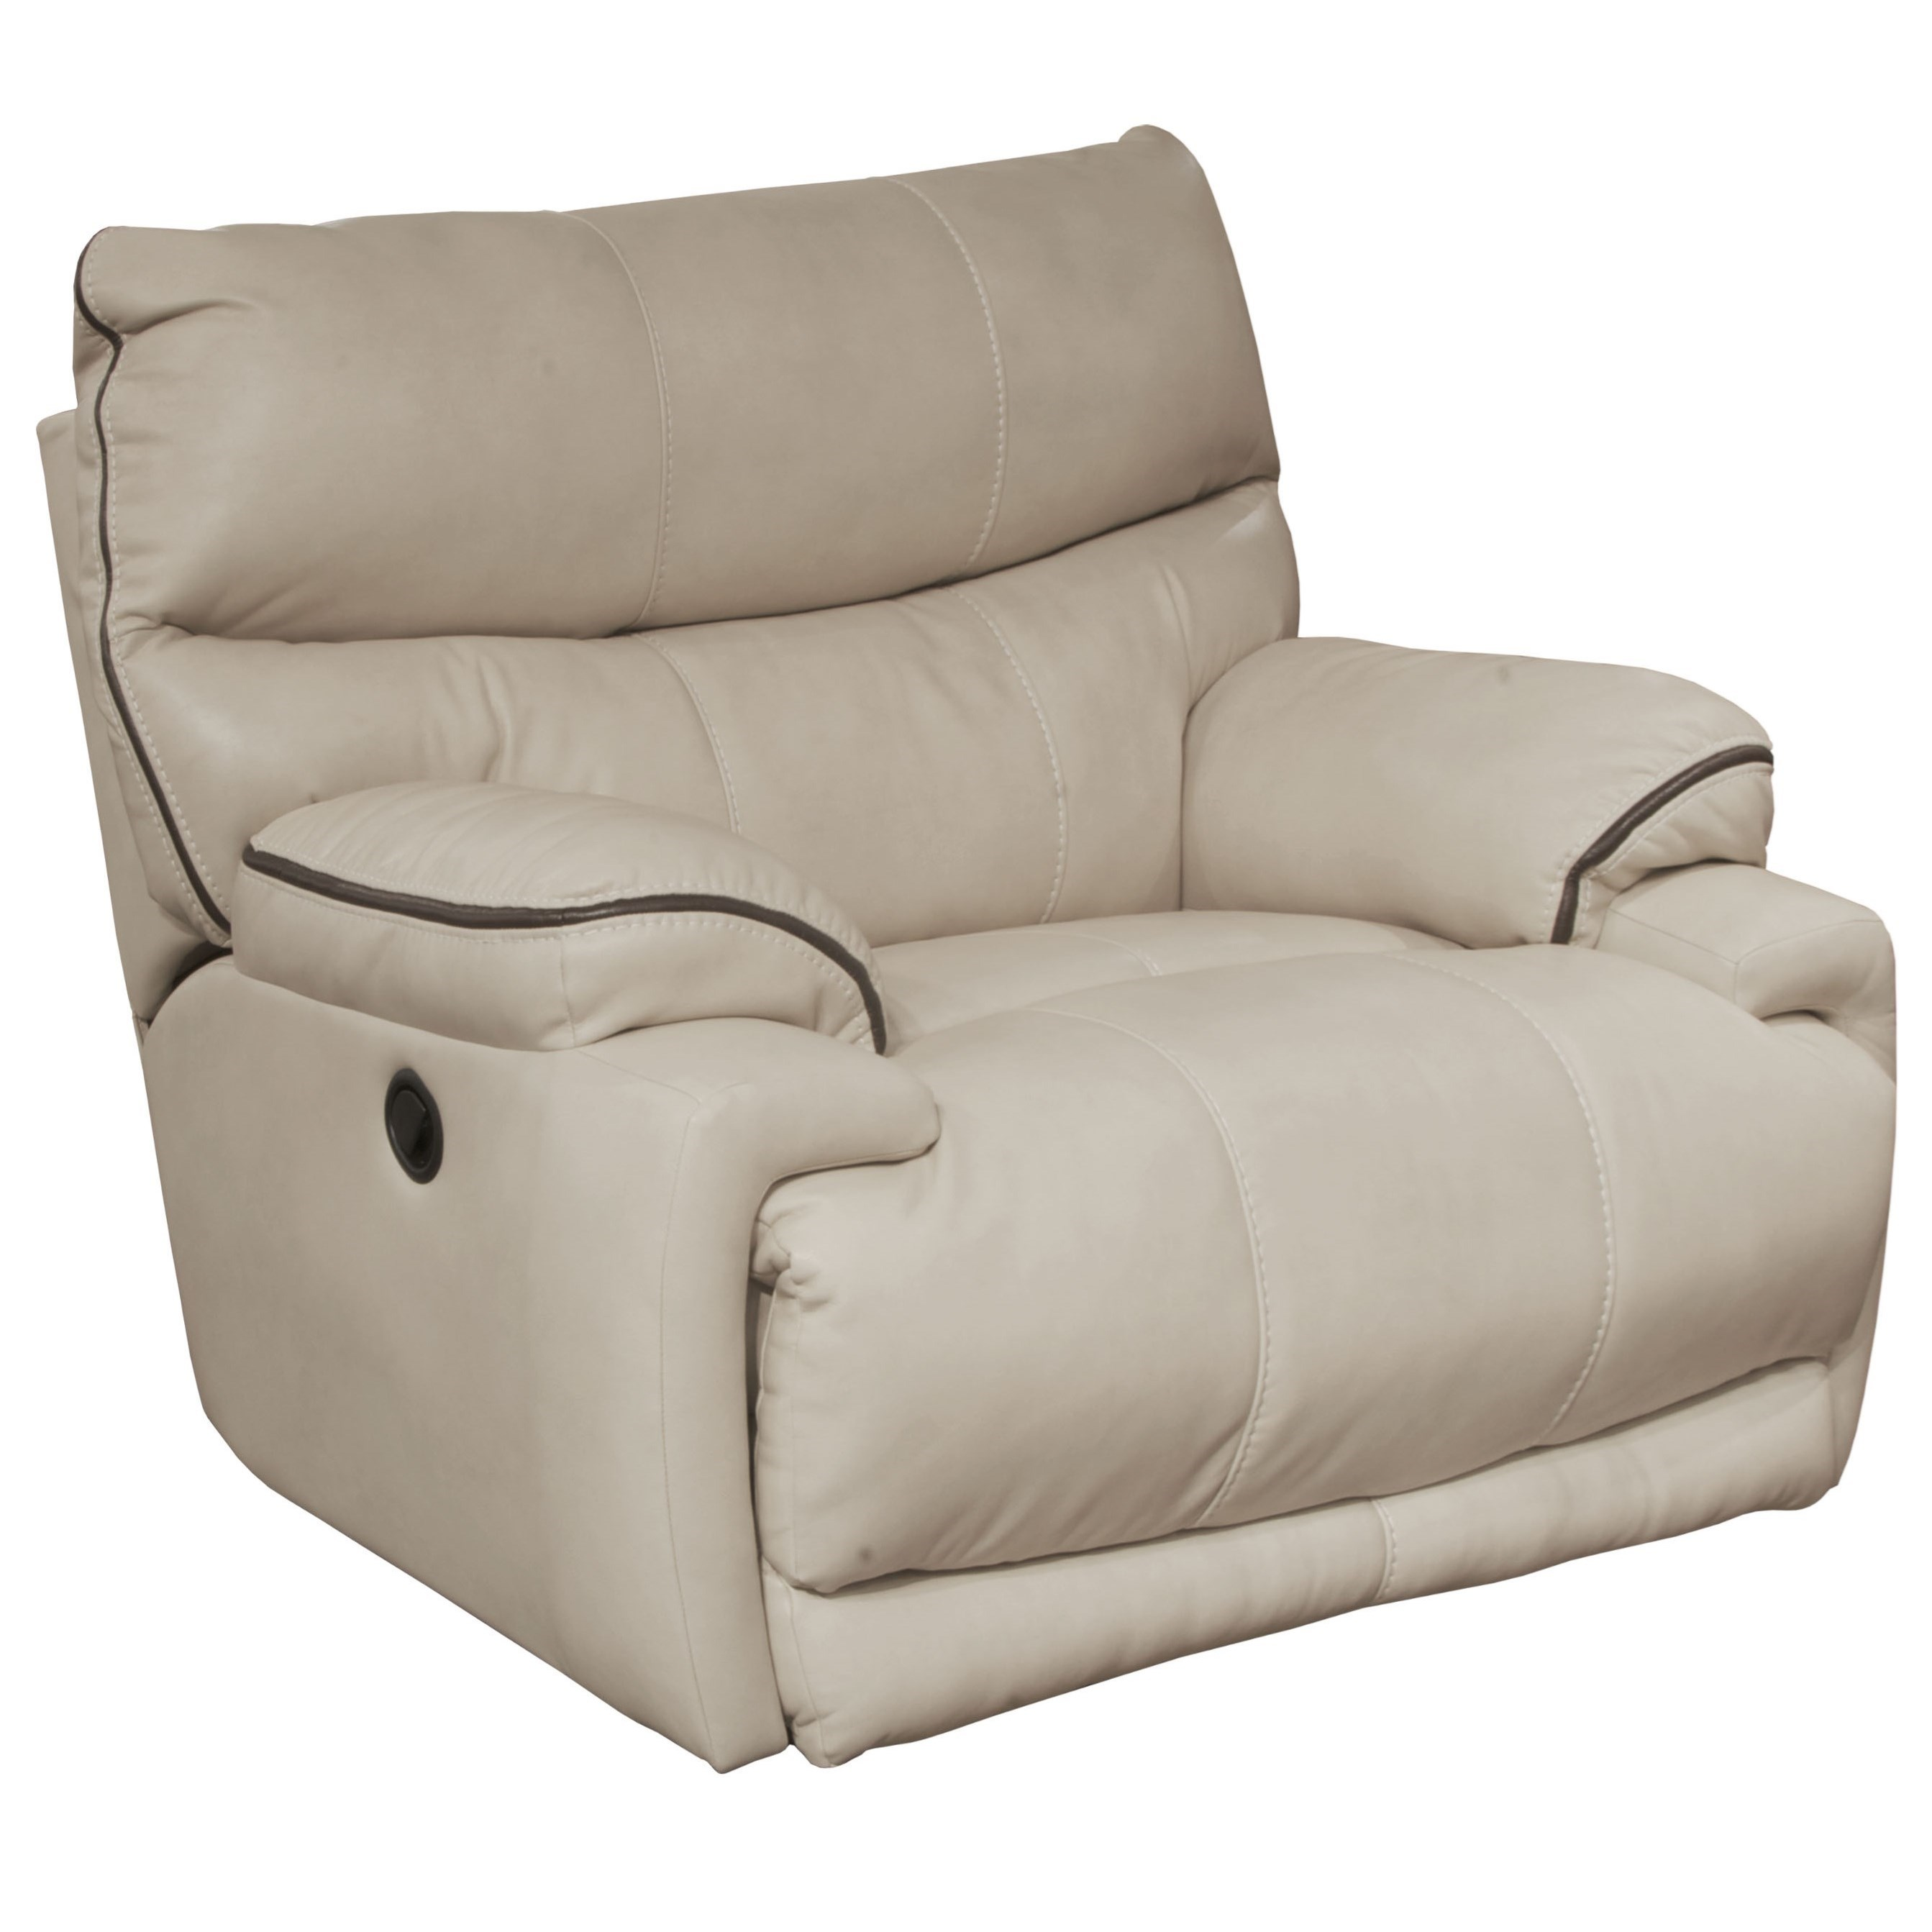 Catnapper Larkin Power Lay-Flat Recliner - Item Number: 613907-1161-16-1261-16